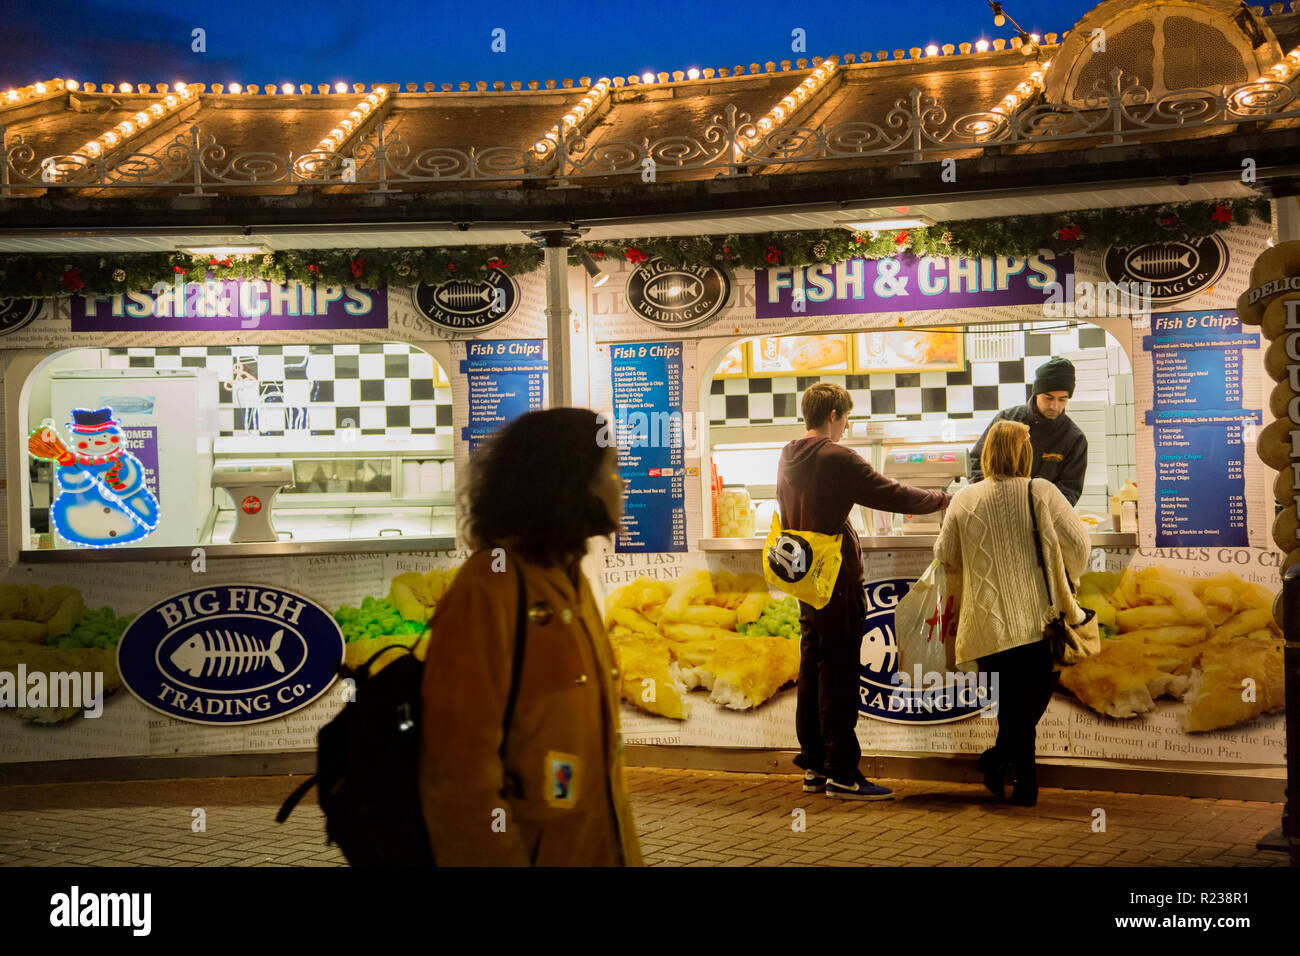 At a fish-and-chip stall on Brighton Pier a young man and woman are buying food. Overhead the roof has rows of light bulbs under an evening sky. Stock Photo